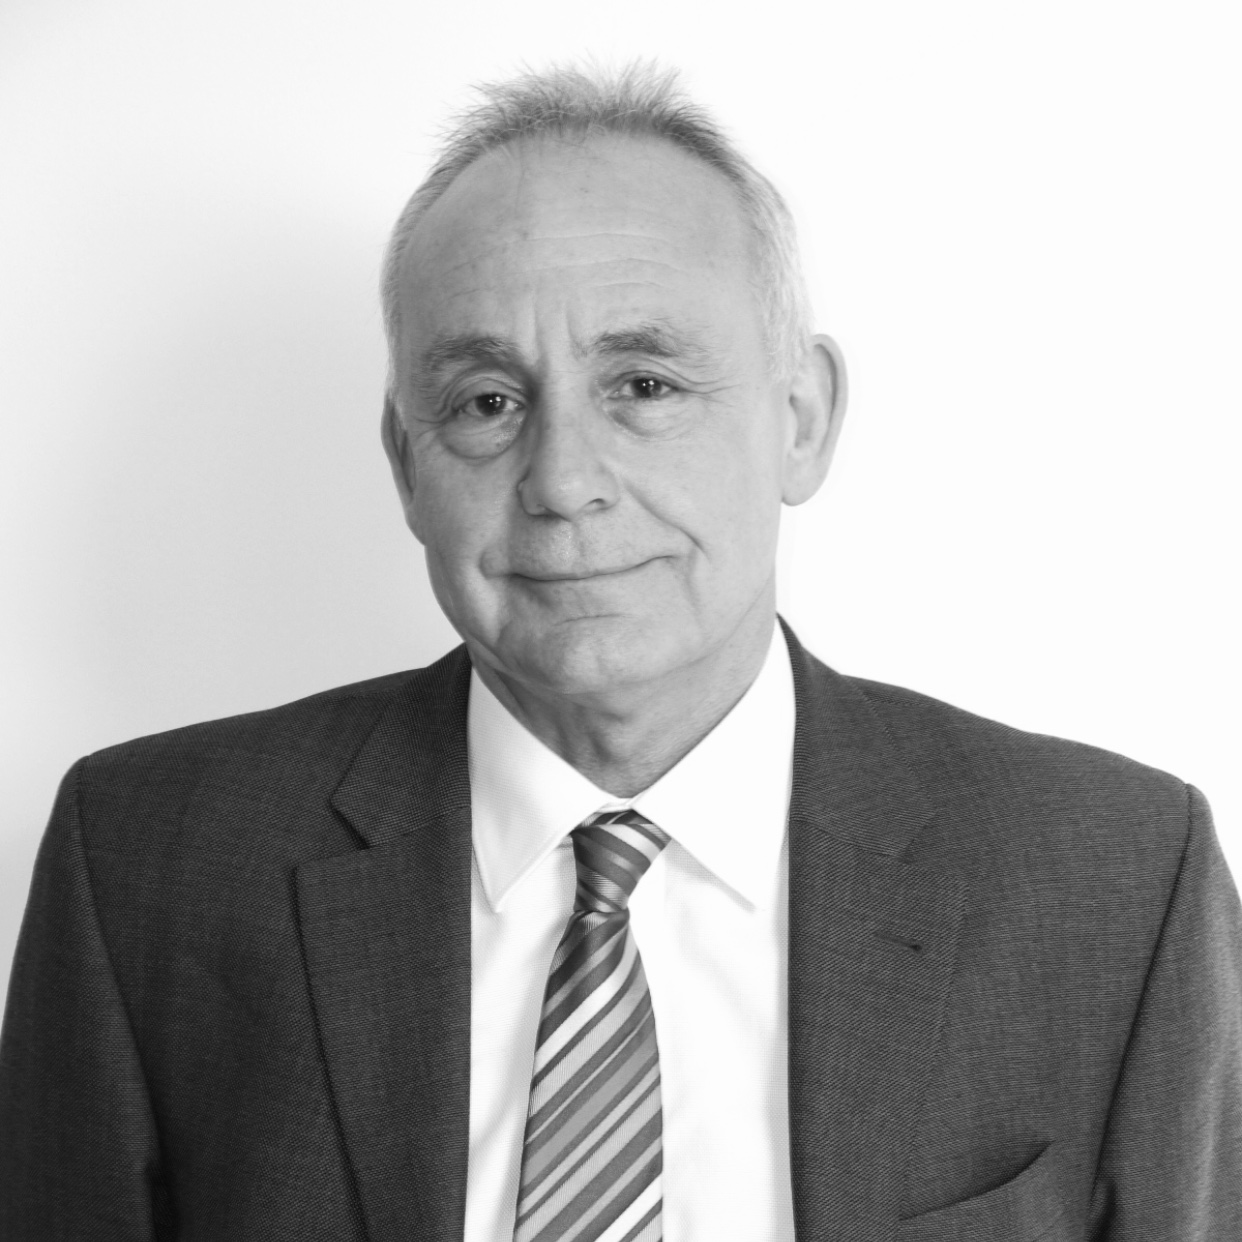 Clive   An extremely knowledgeable lead intervention adviser within Children's Services. Clive has extensive knowledge of approaches to transformation making sustainable improvements within councils.